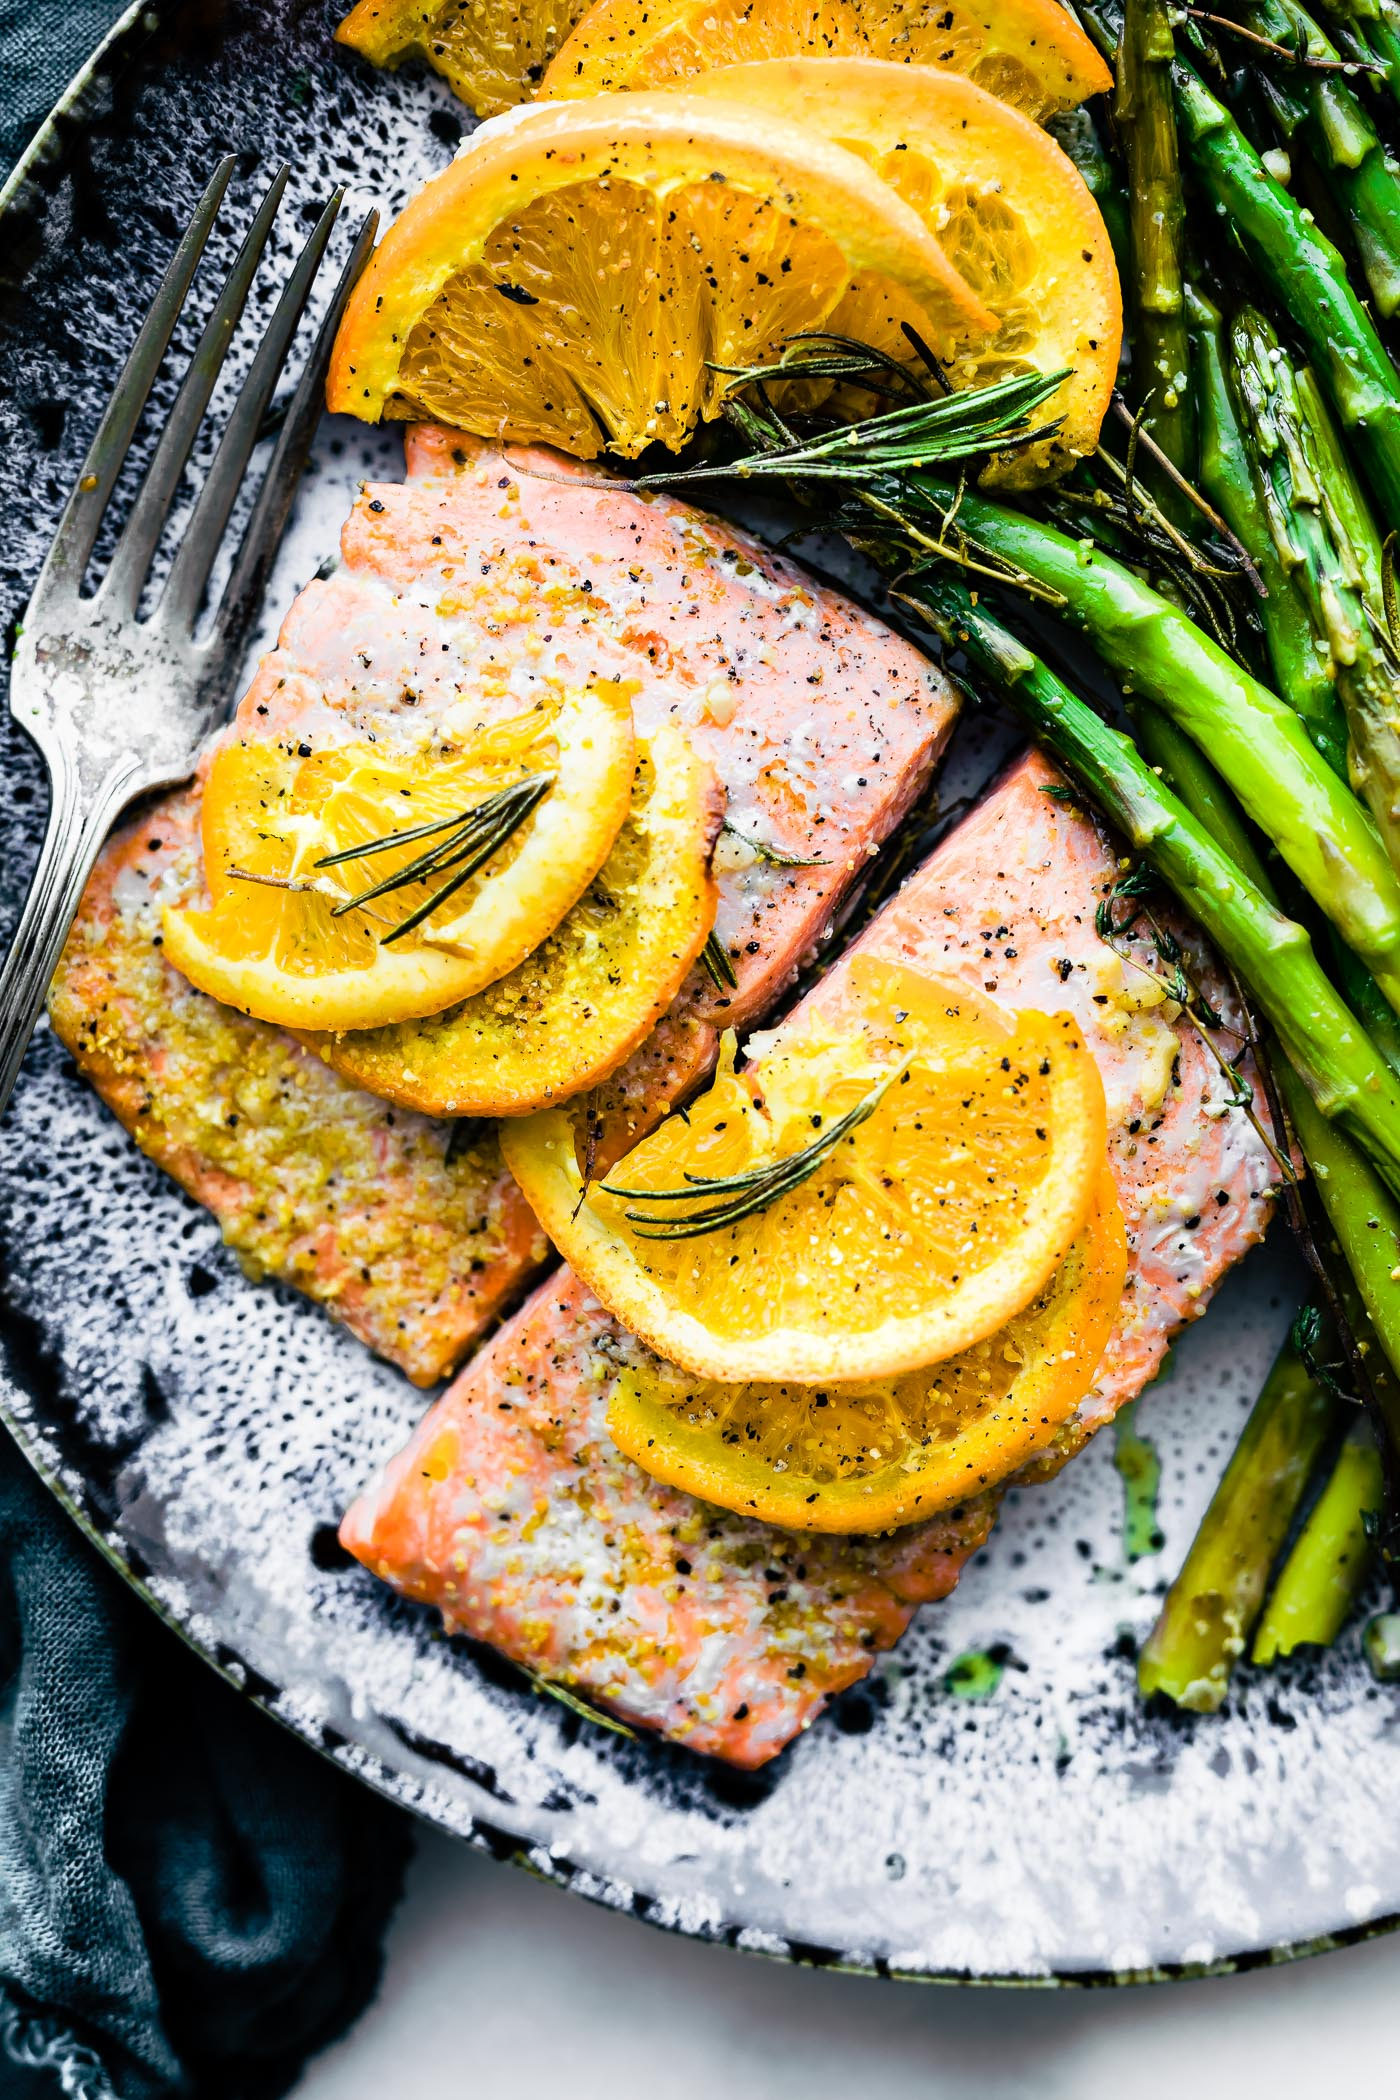 Rosemary citrus baked salmon is a healthy one pan meal ready in 20 minutes. A delicious baked salmon recipe that's simple to make. #Paleo and #whole30 friendly.